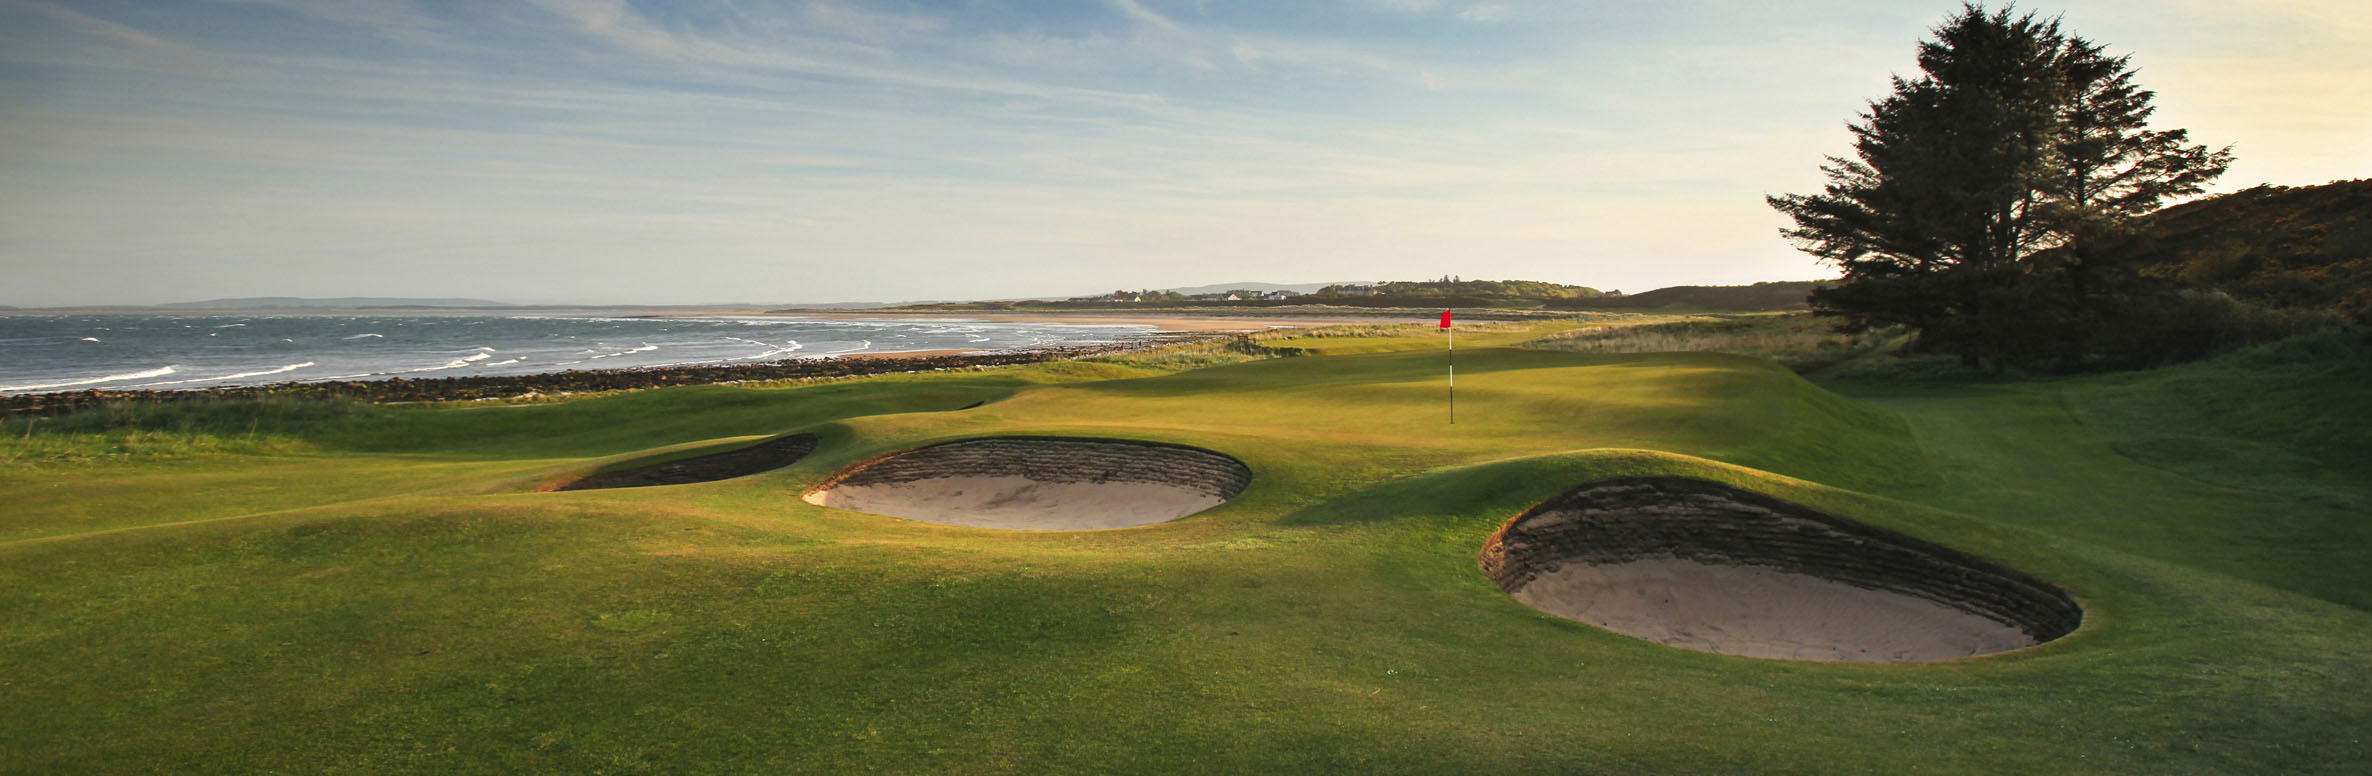 Golf Course Image - Royal Dornoch Golf Club No. 10